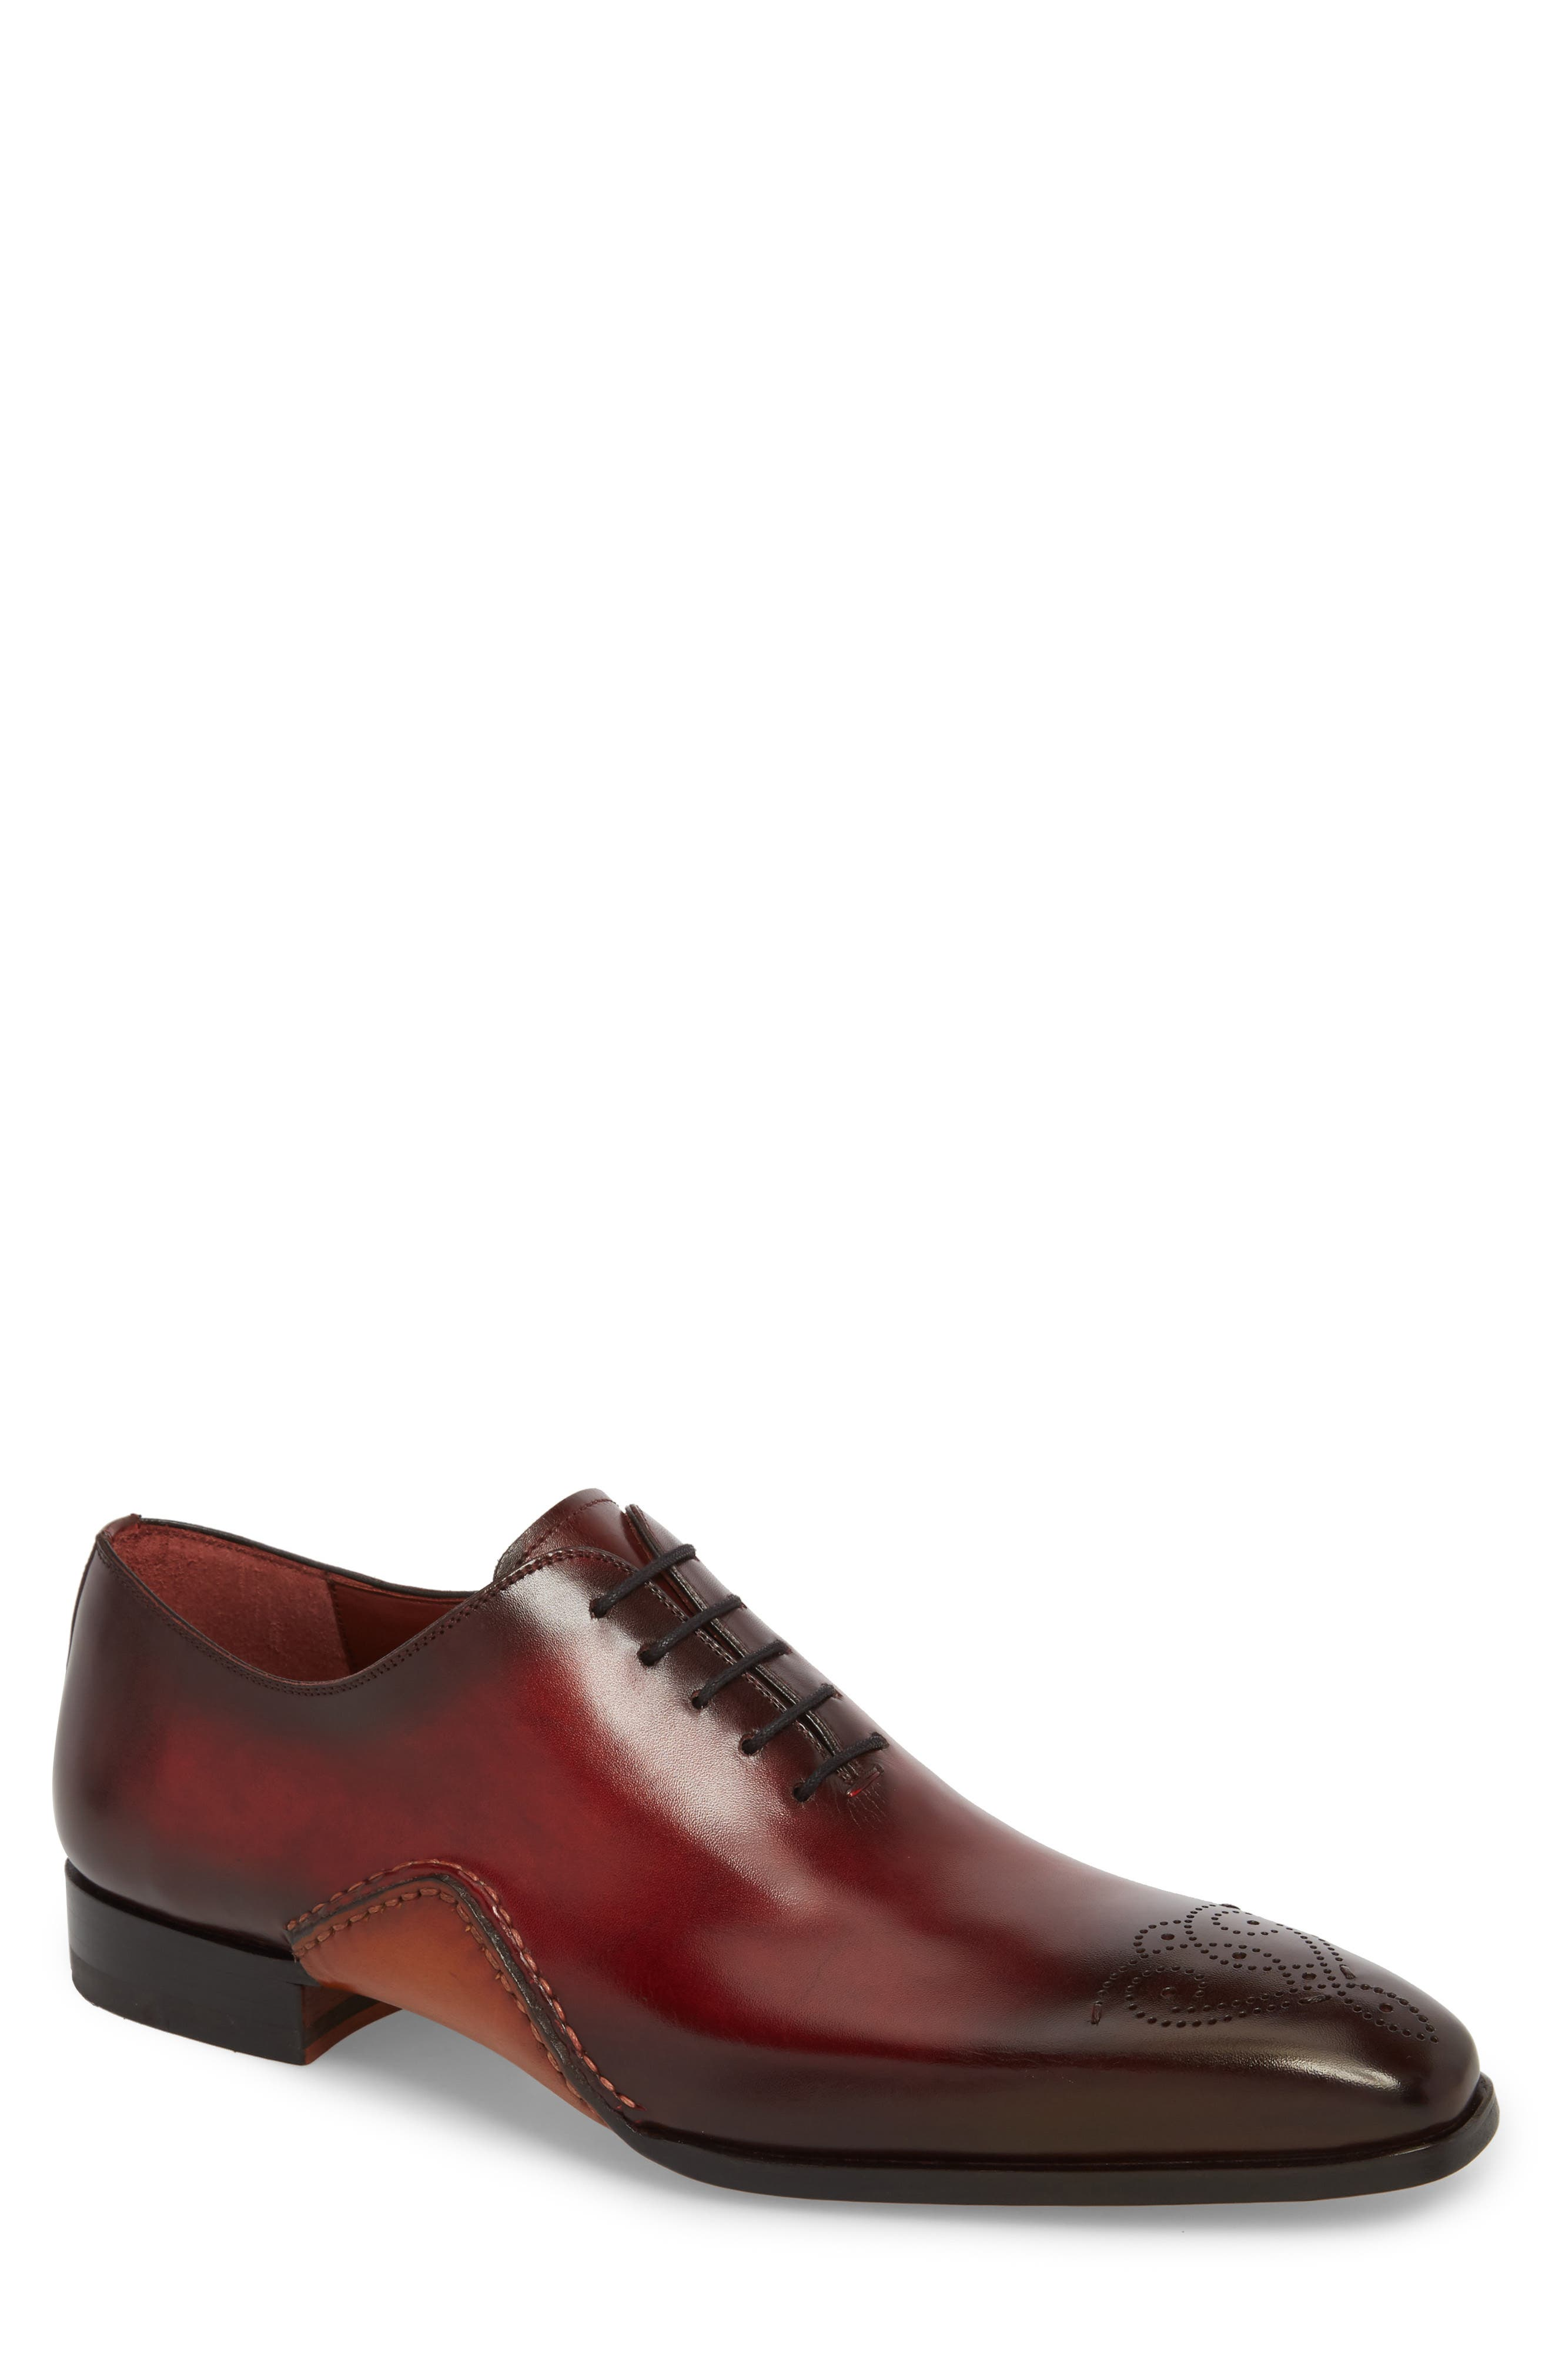 Vada Brogued Whole Cut Shoe,                             Main thumbnail 1, color,                             Red Leather